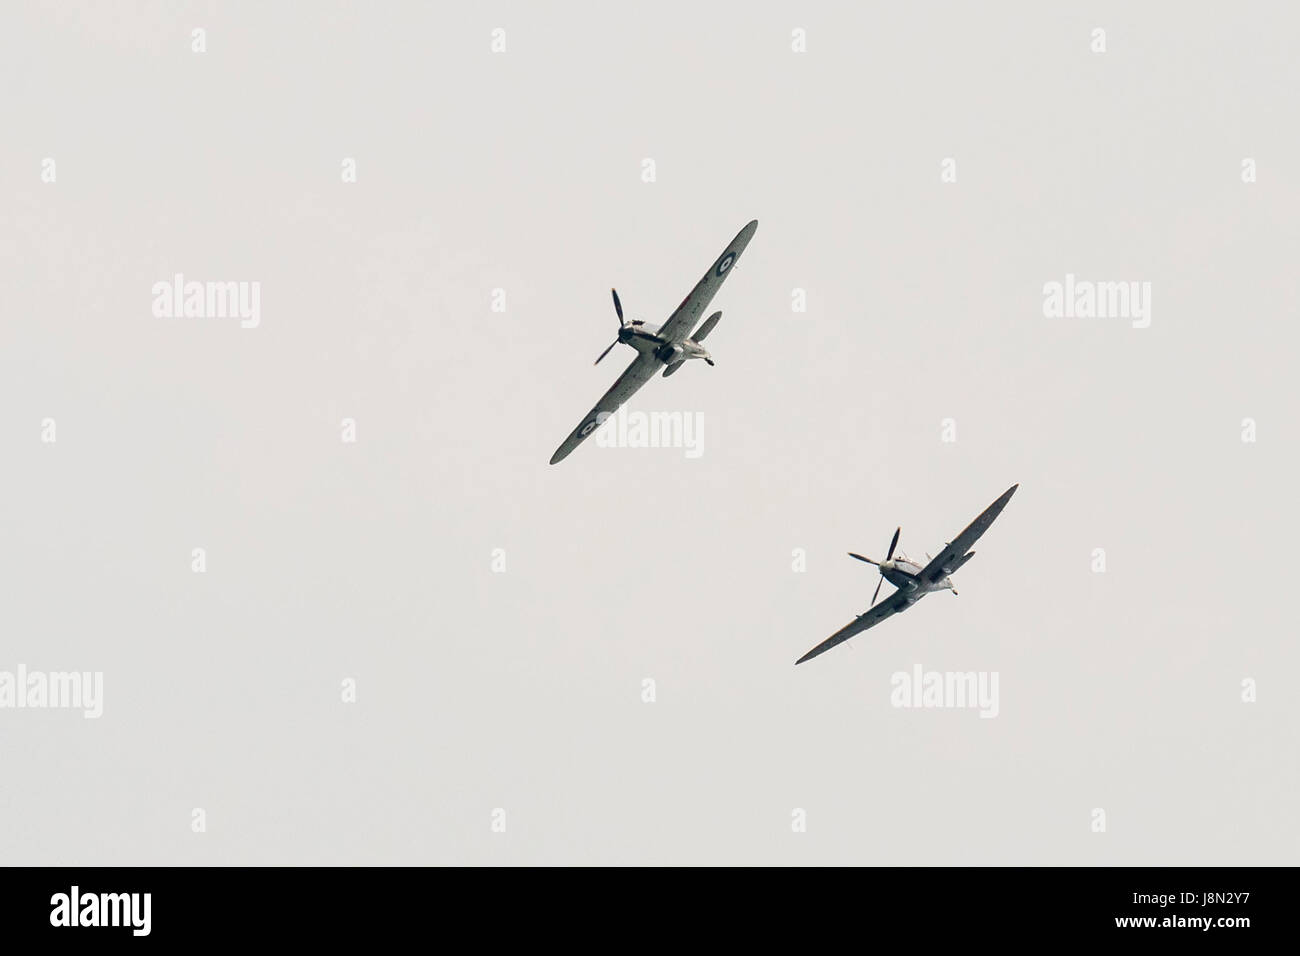 Vintage world war two Hawker Hurricane, followed by a spitfire, flying over head against a whitest sky. - Stock Image